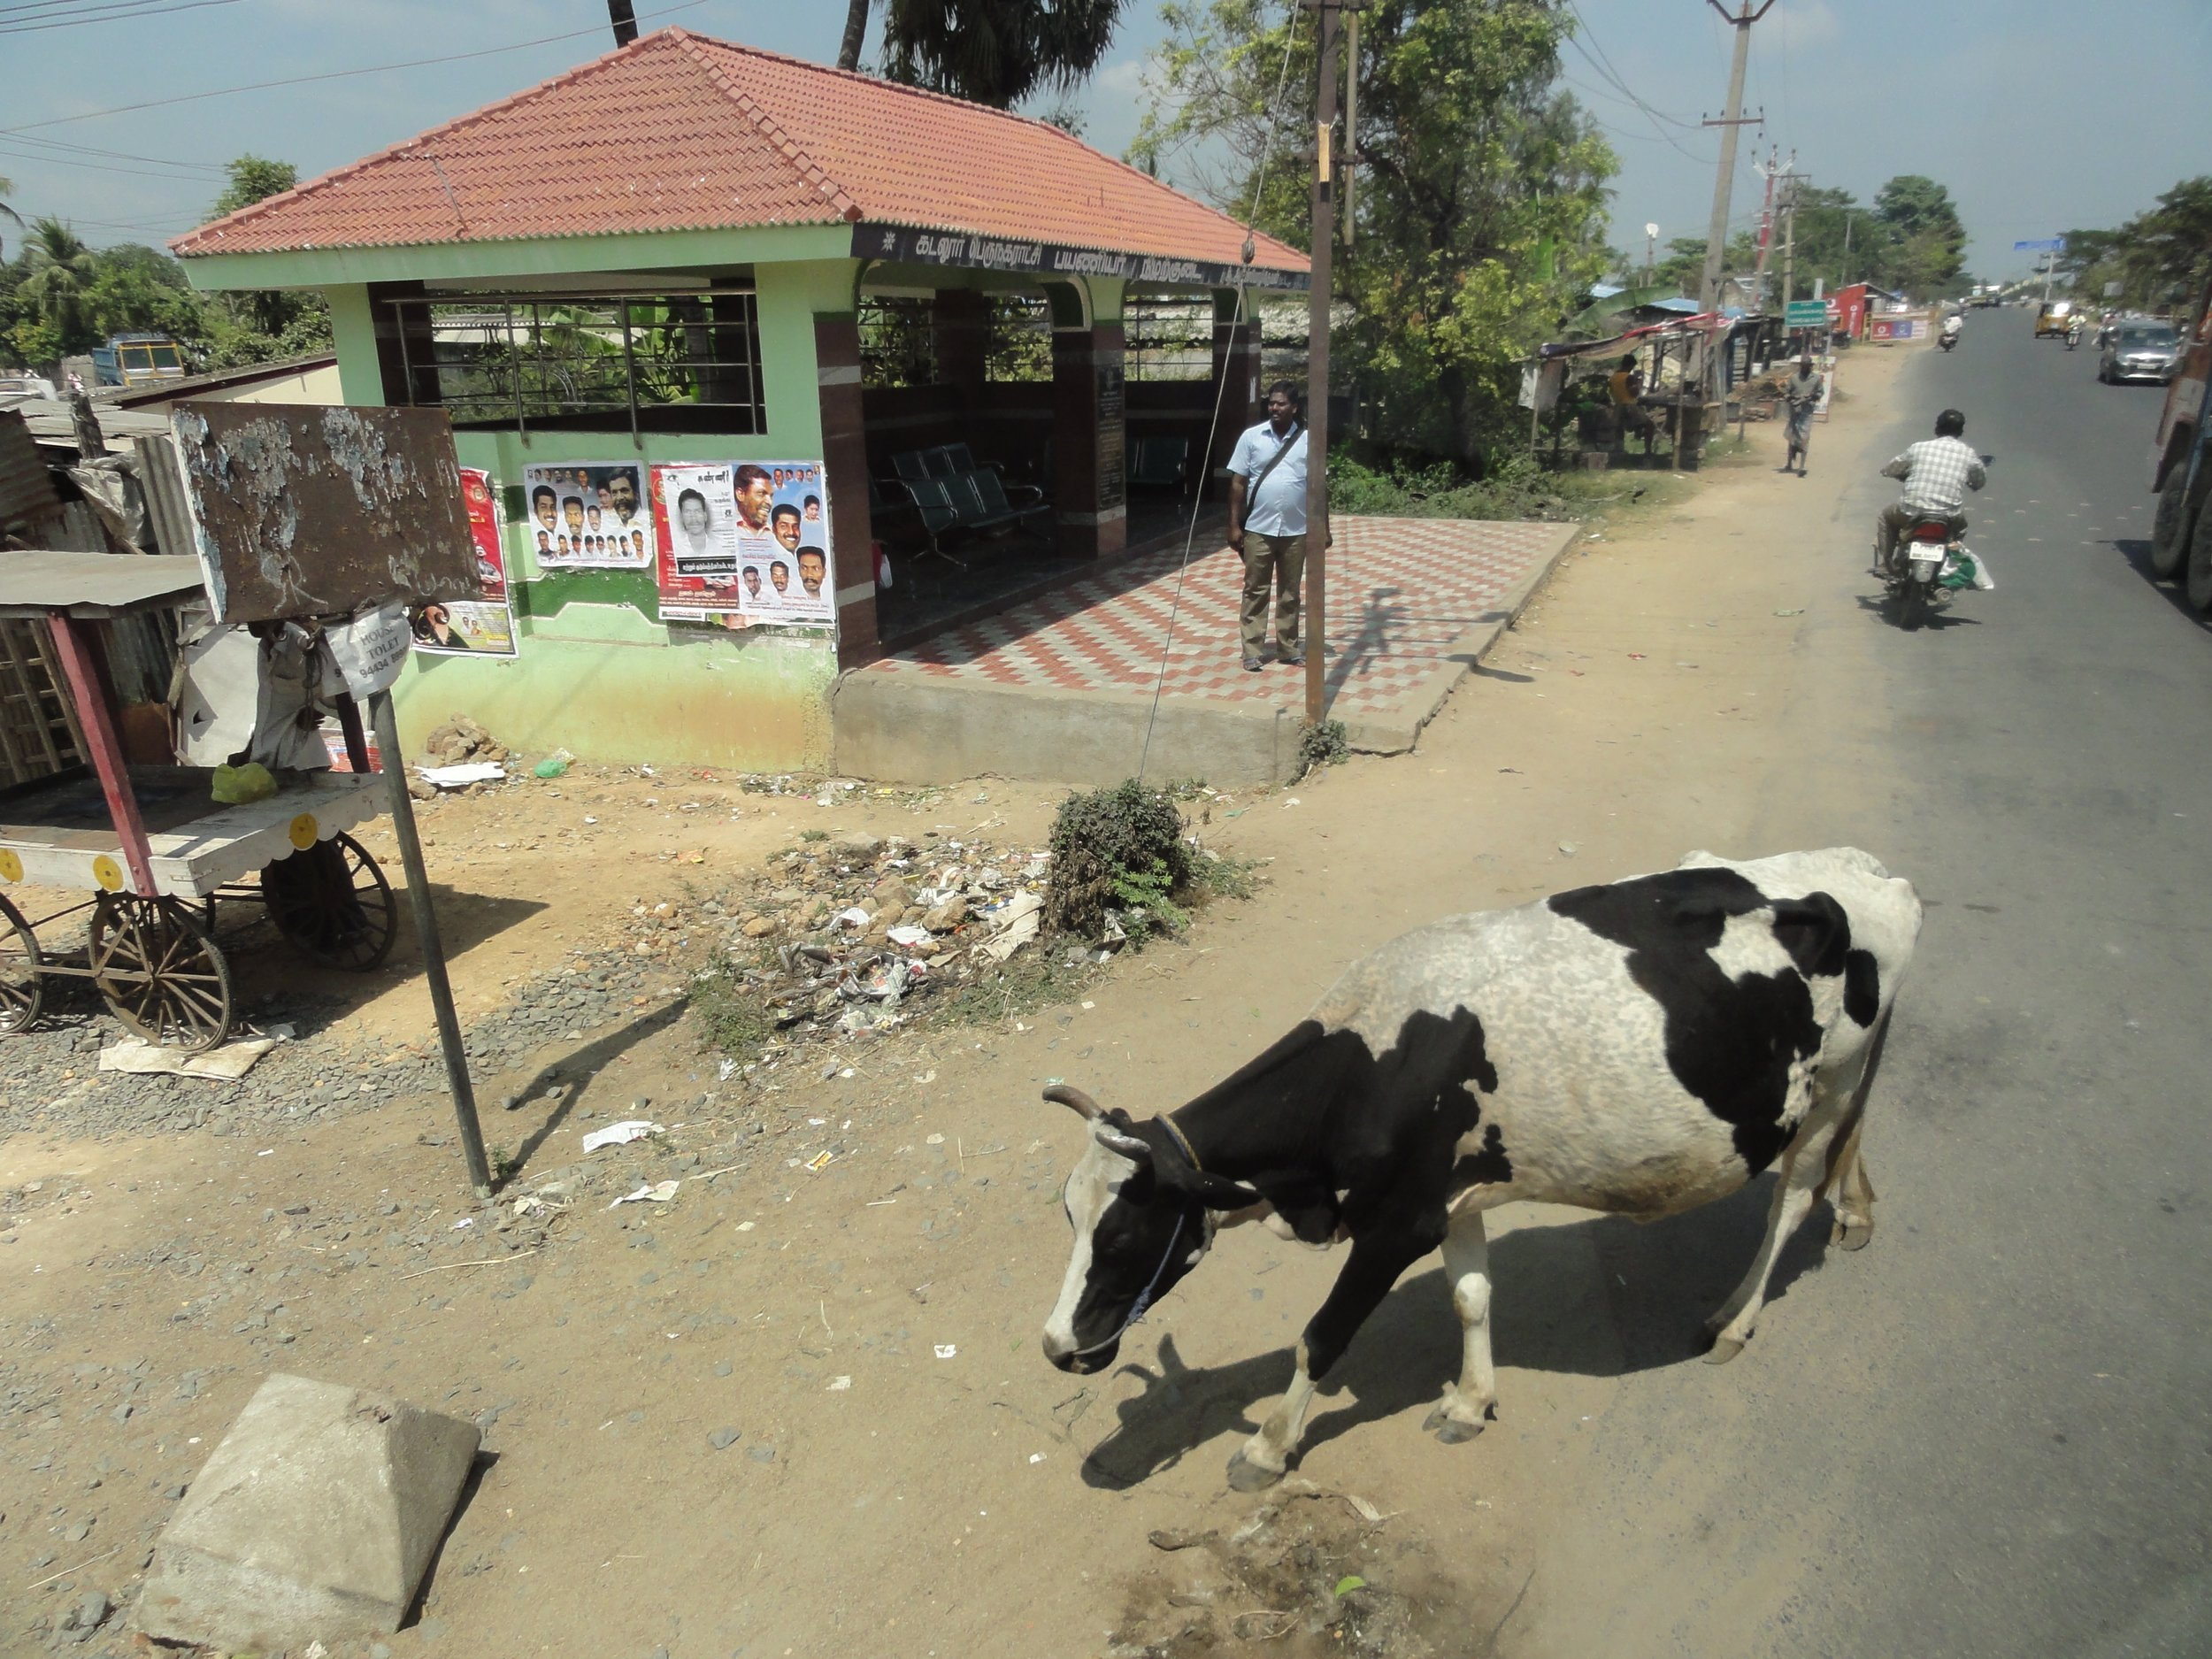 Looking down from the bus - this cow made it safely across the road in front of a truck and a scooter.